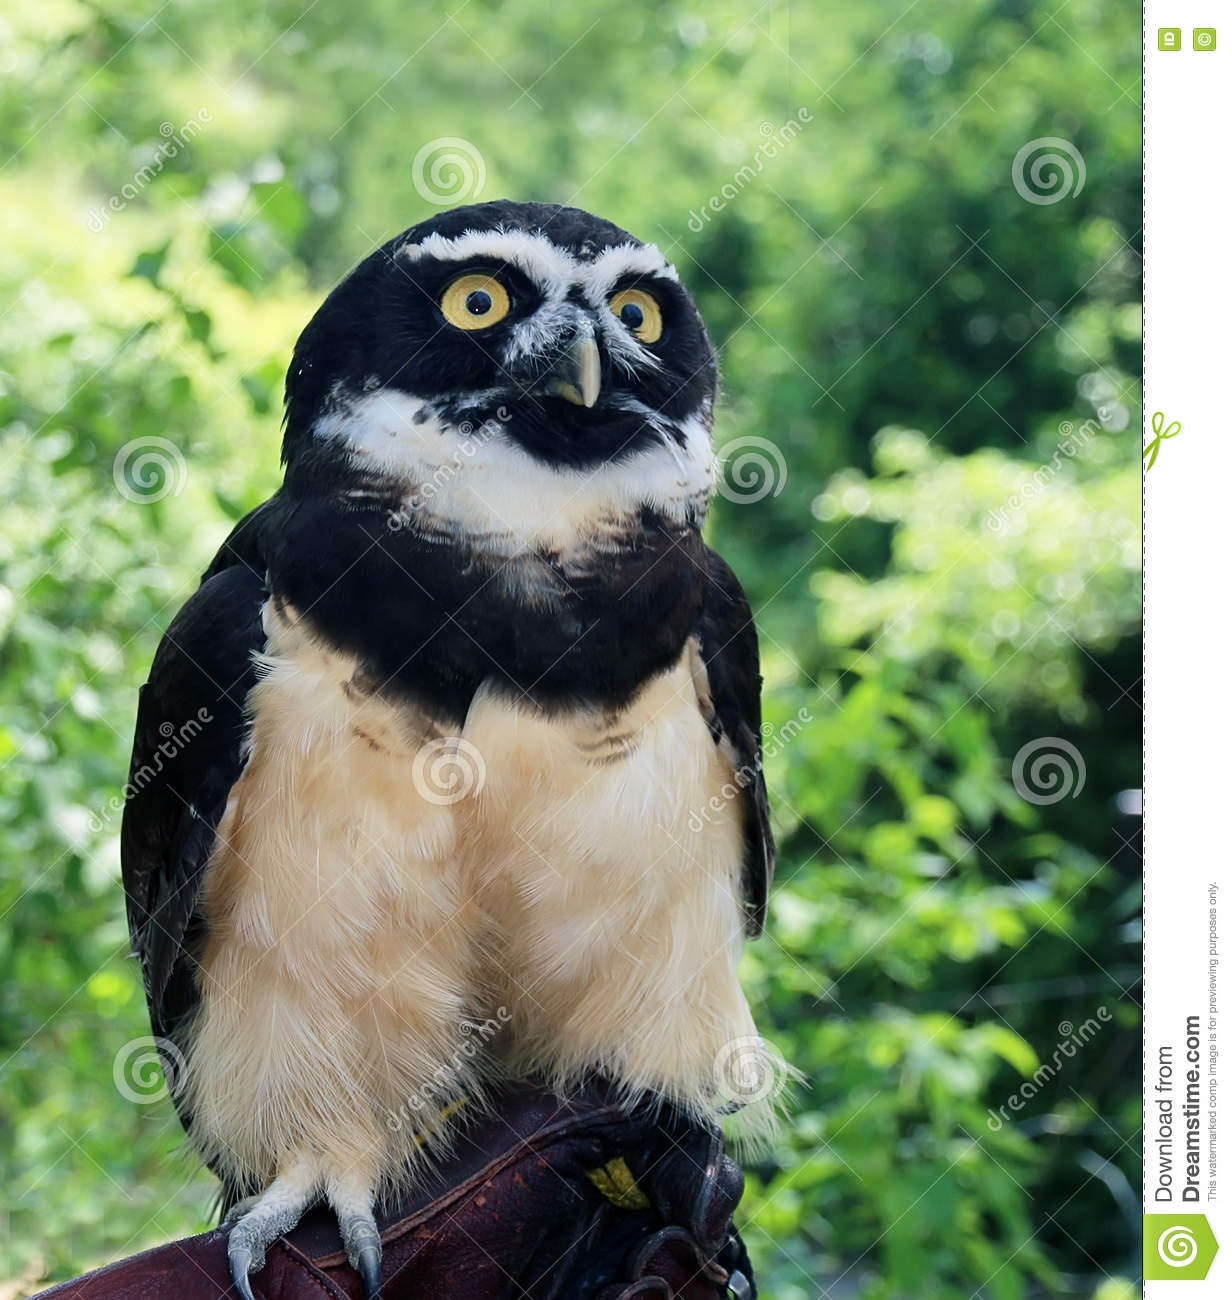 Spectacled Owl clipart #7, Download drawings